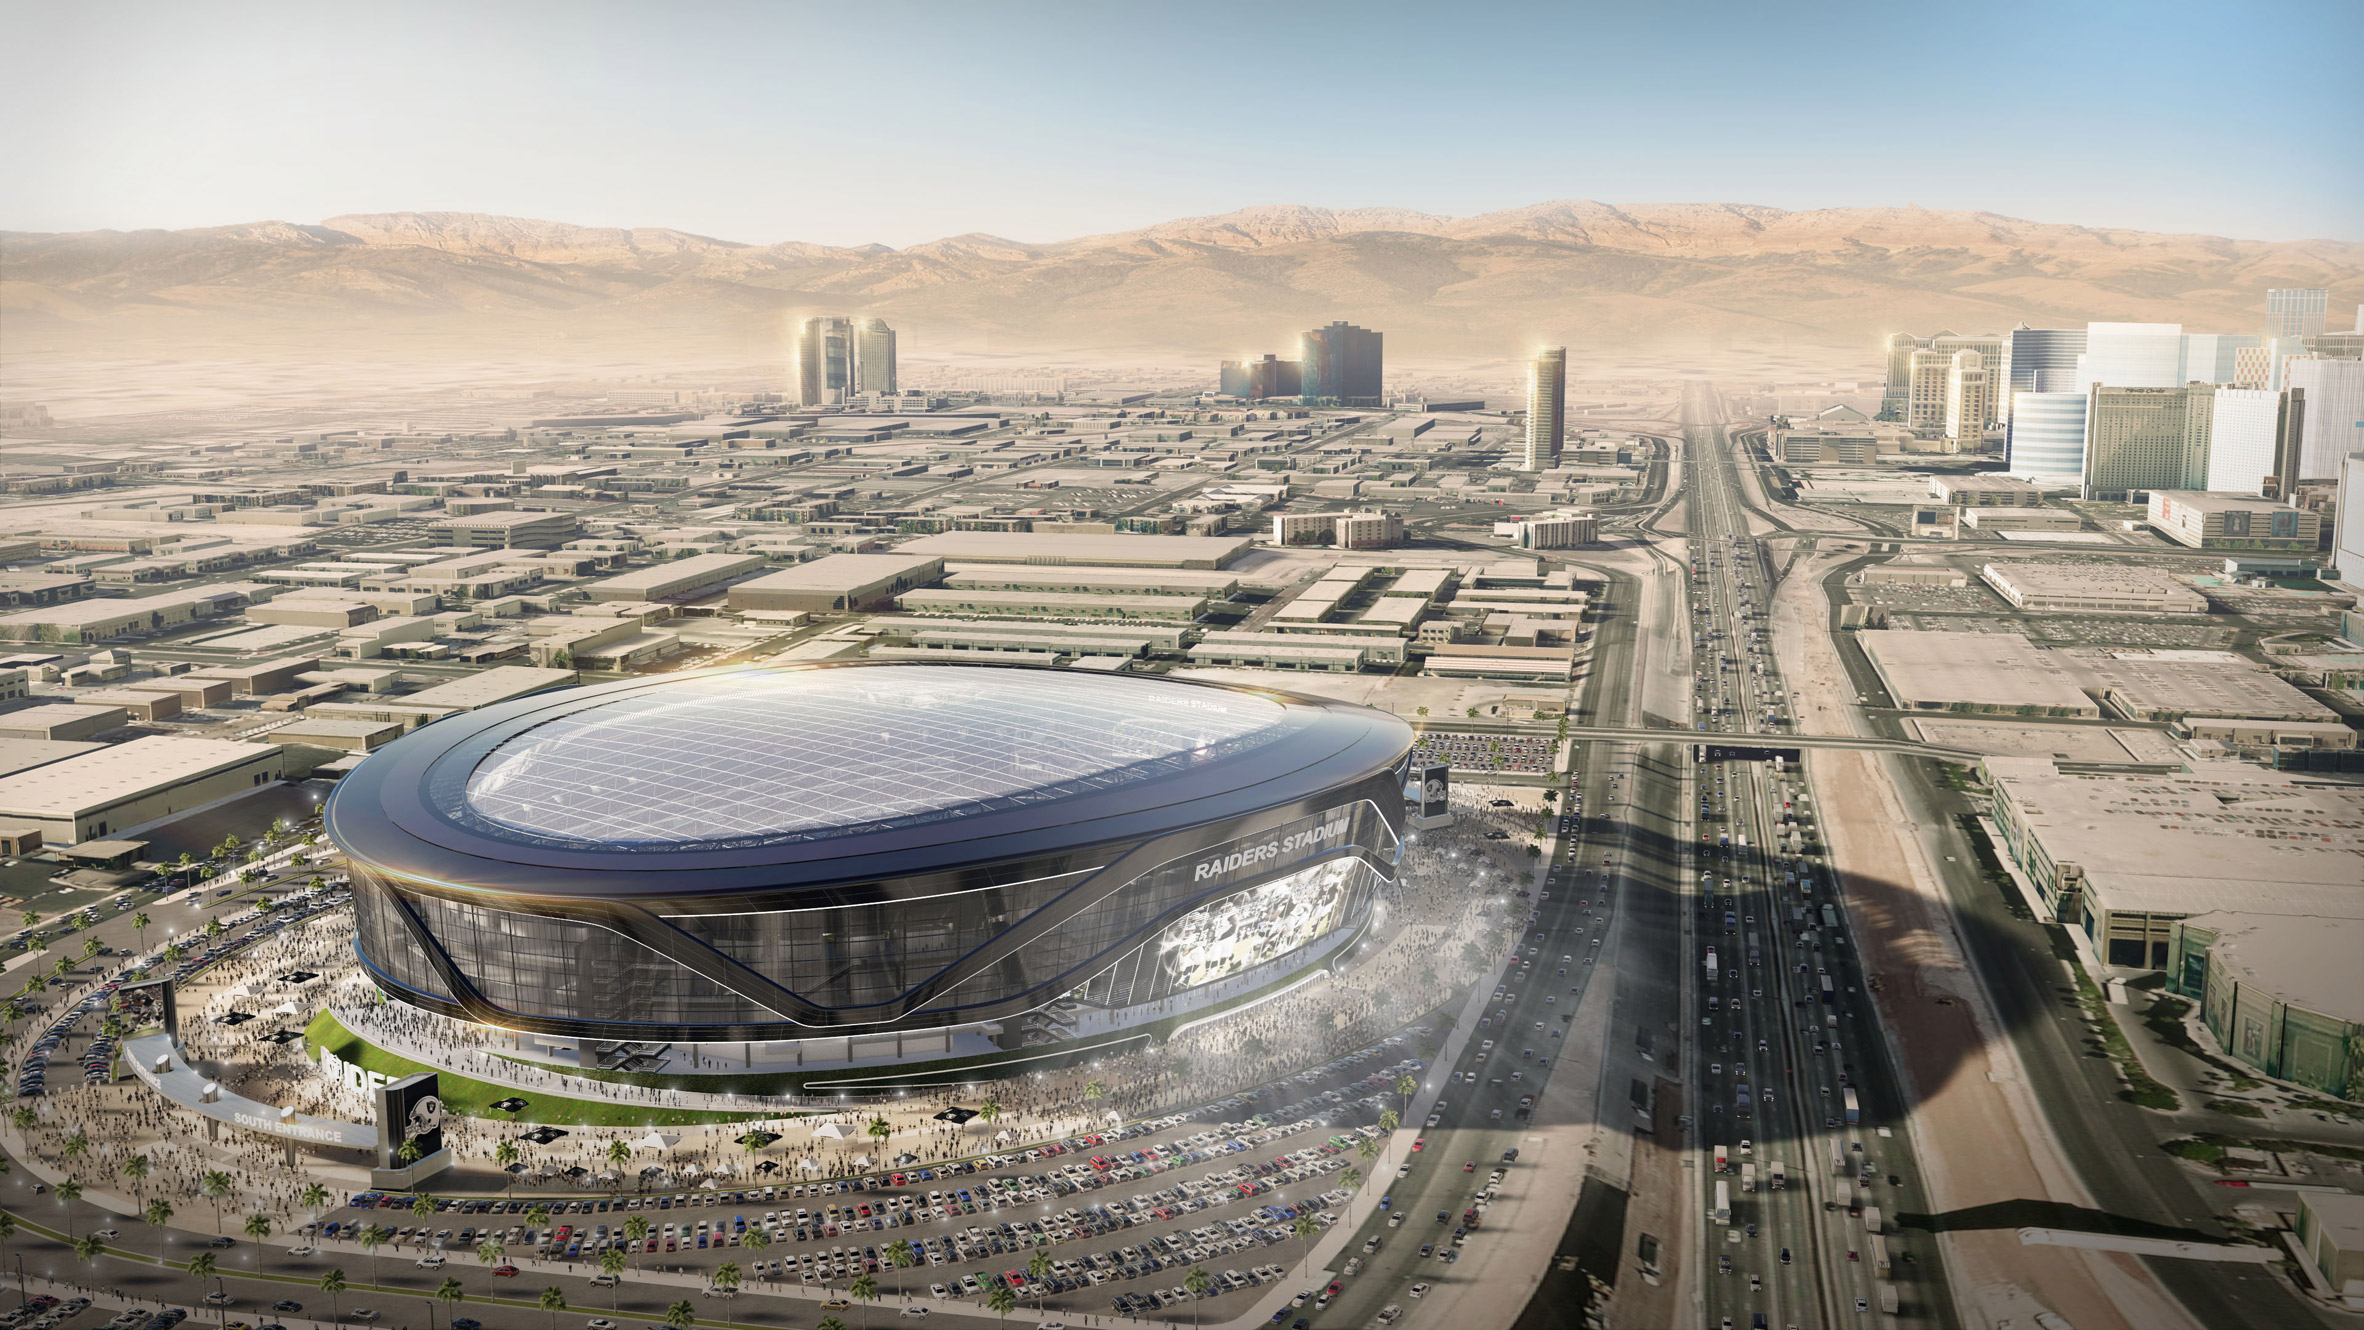 Las Vegas hopes to entice Oakland Raiders with $1.9 billion stadium